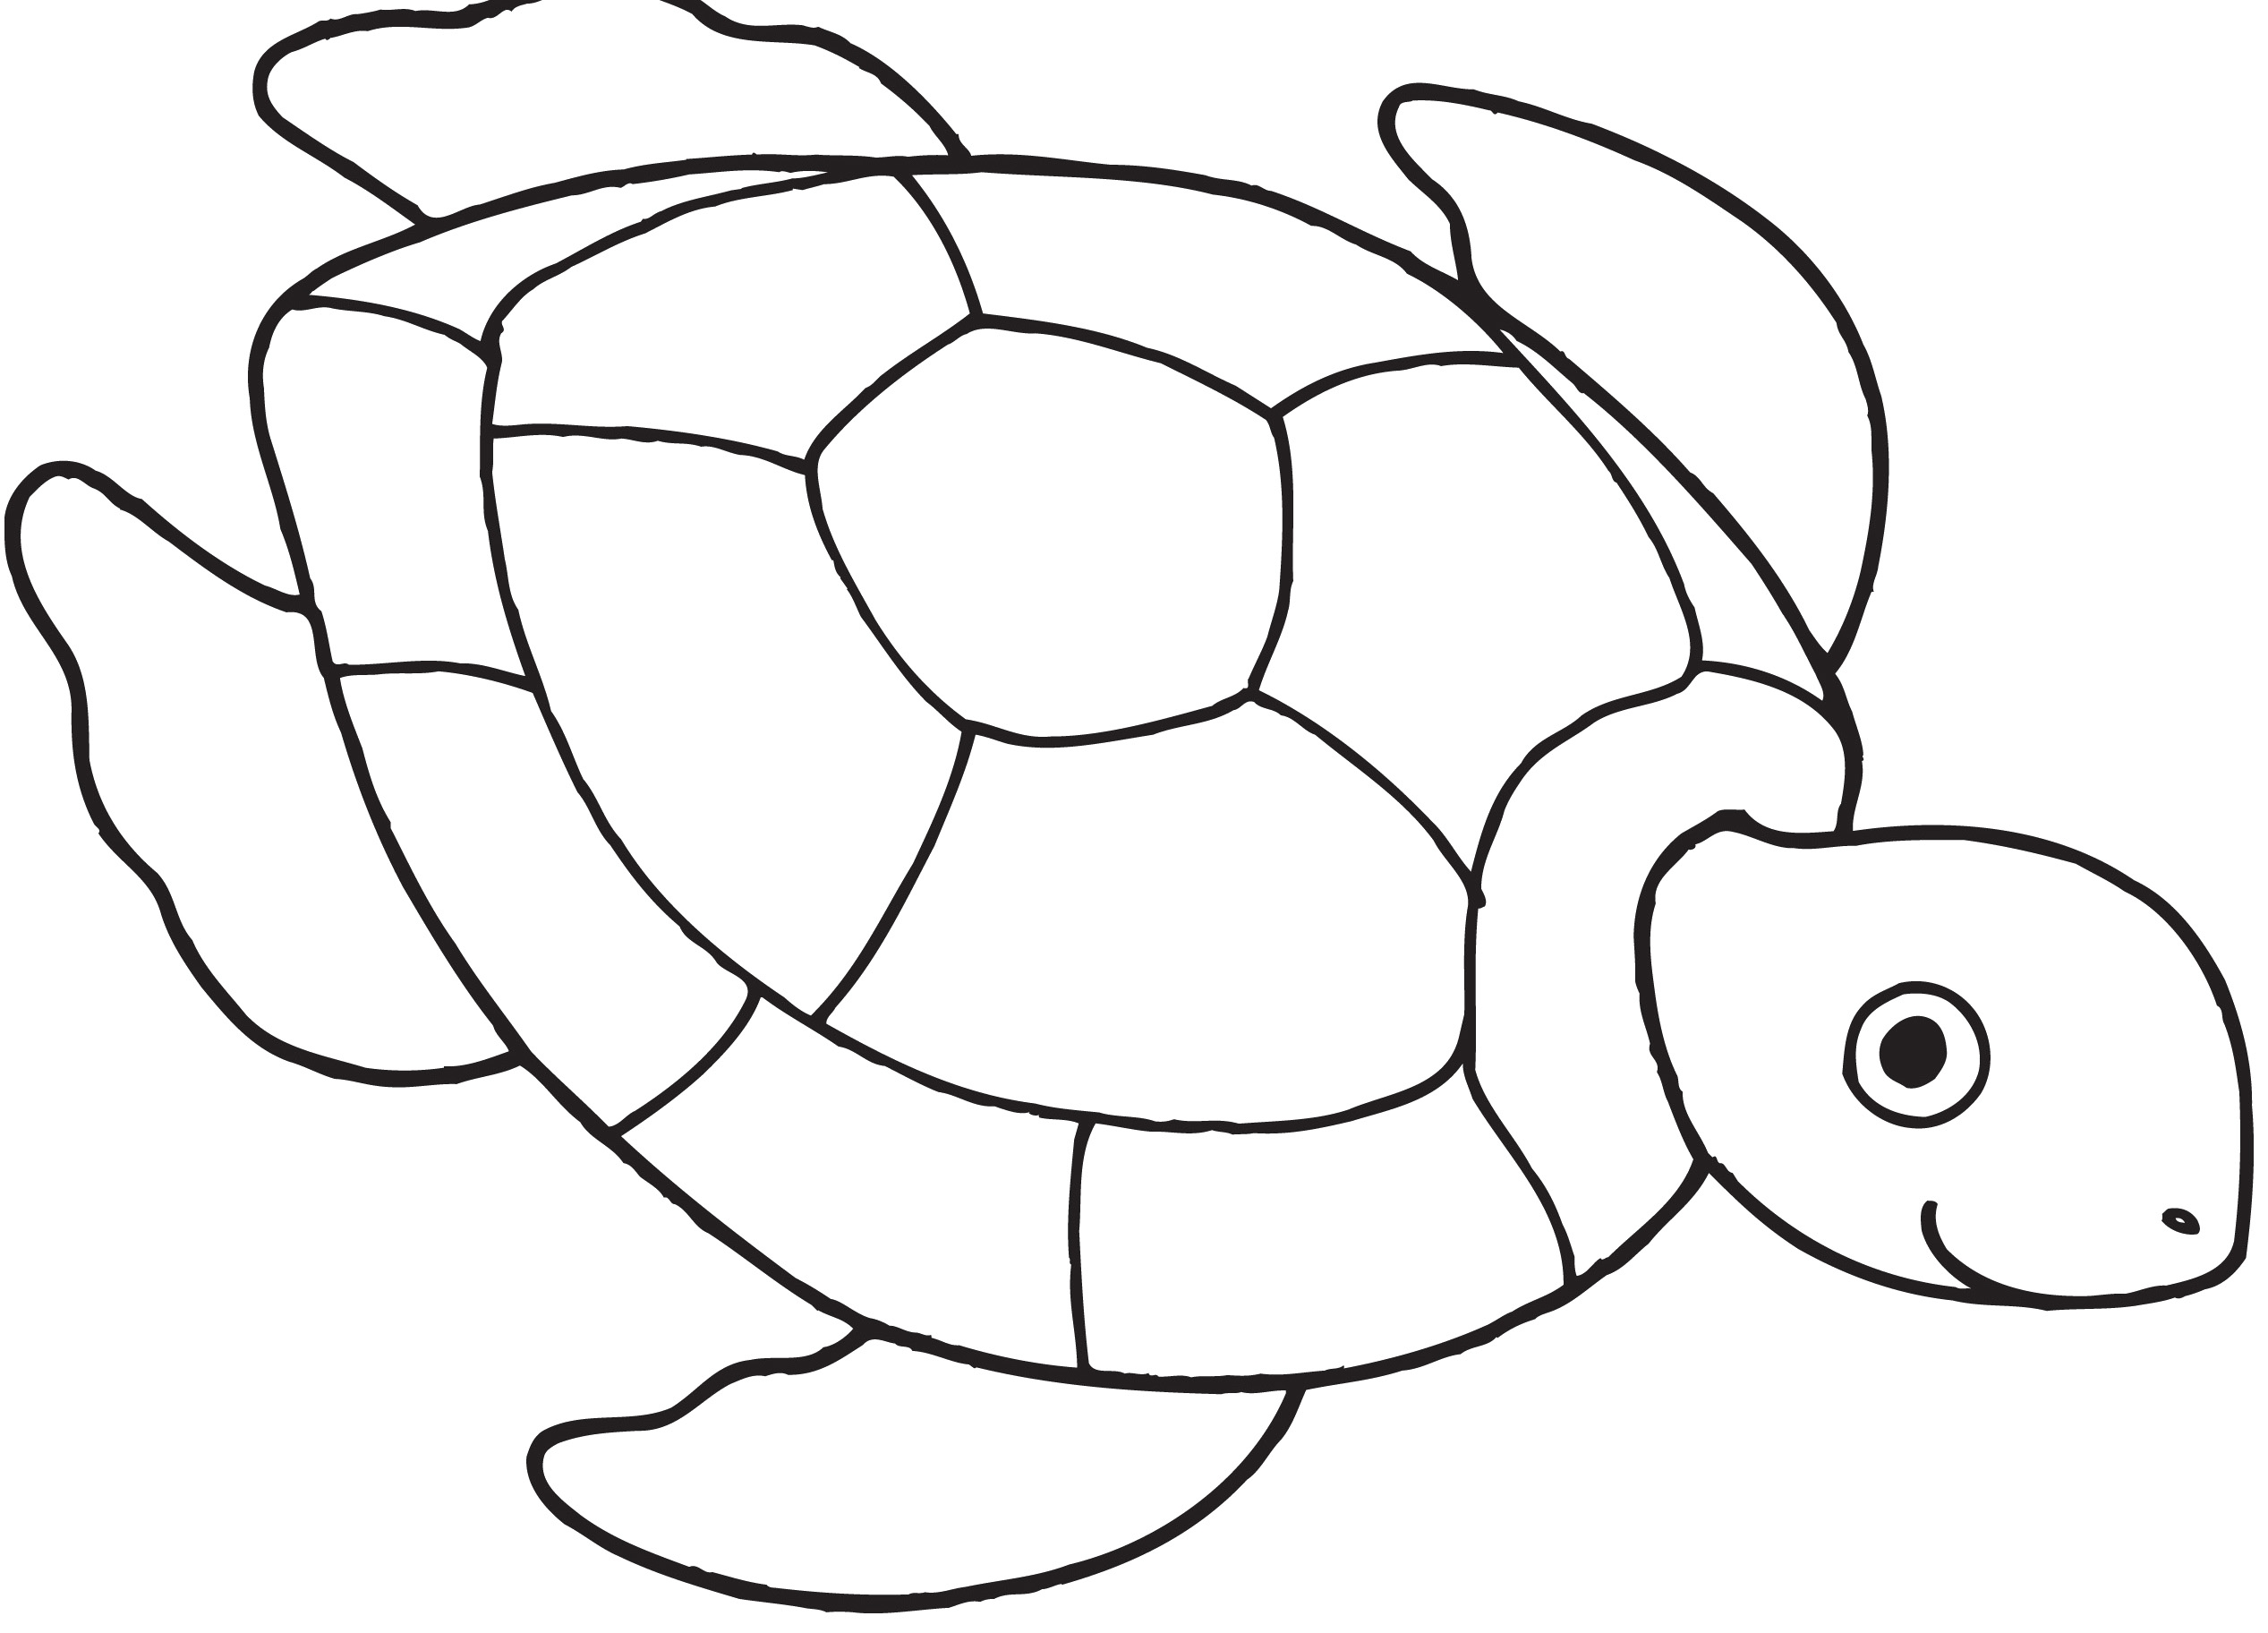 Black and white turtle clipart vector Black And White Turtle Drawings   Free download best Black And White ... vector